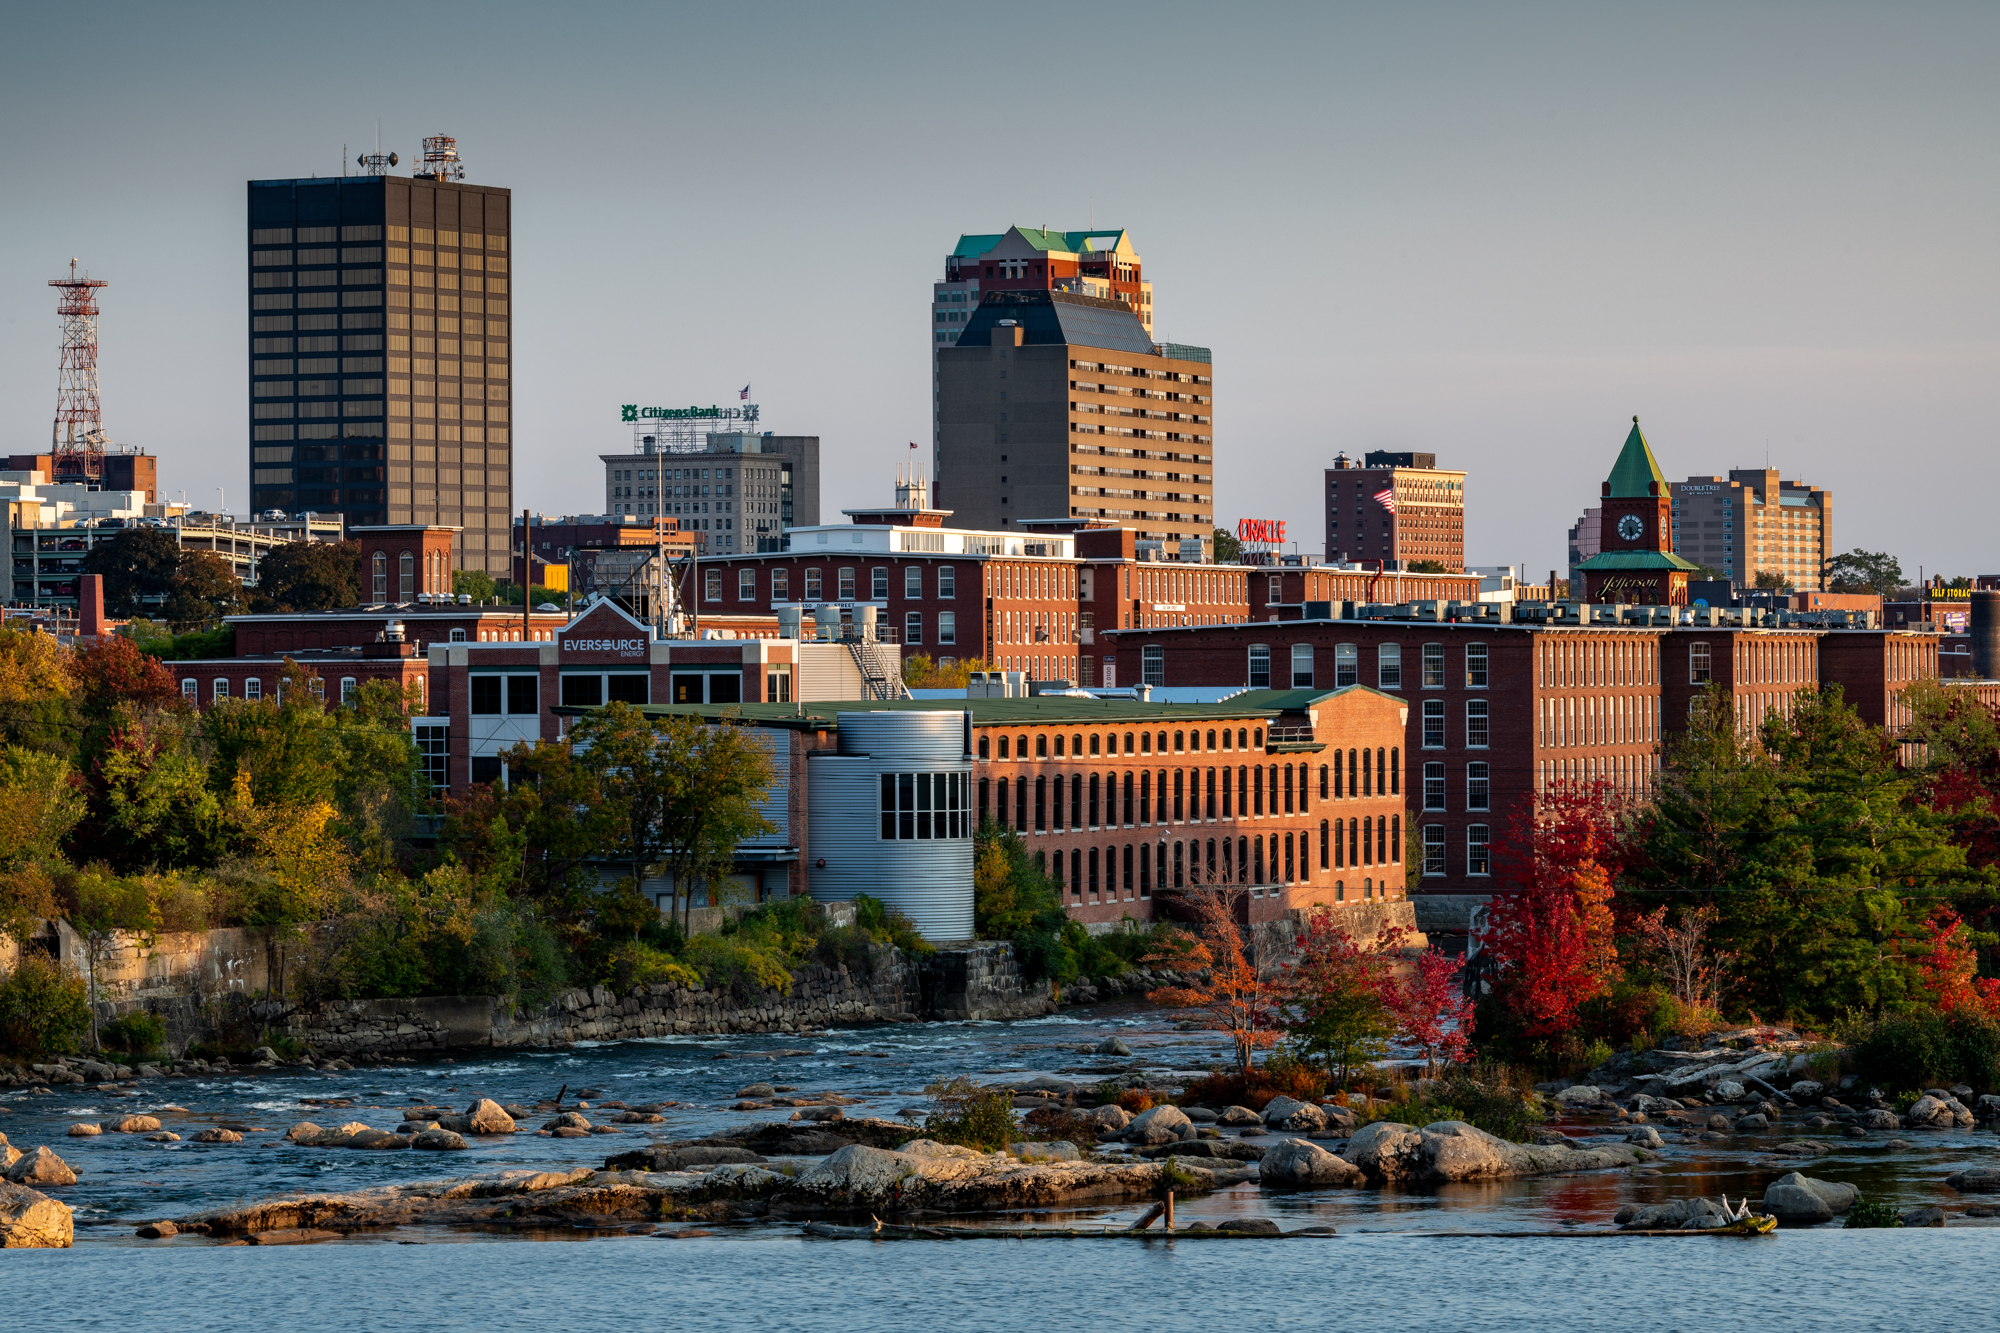 The skyline of Manchester, New Hampshire